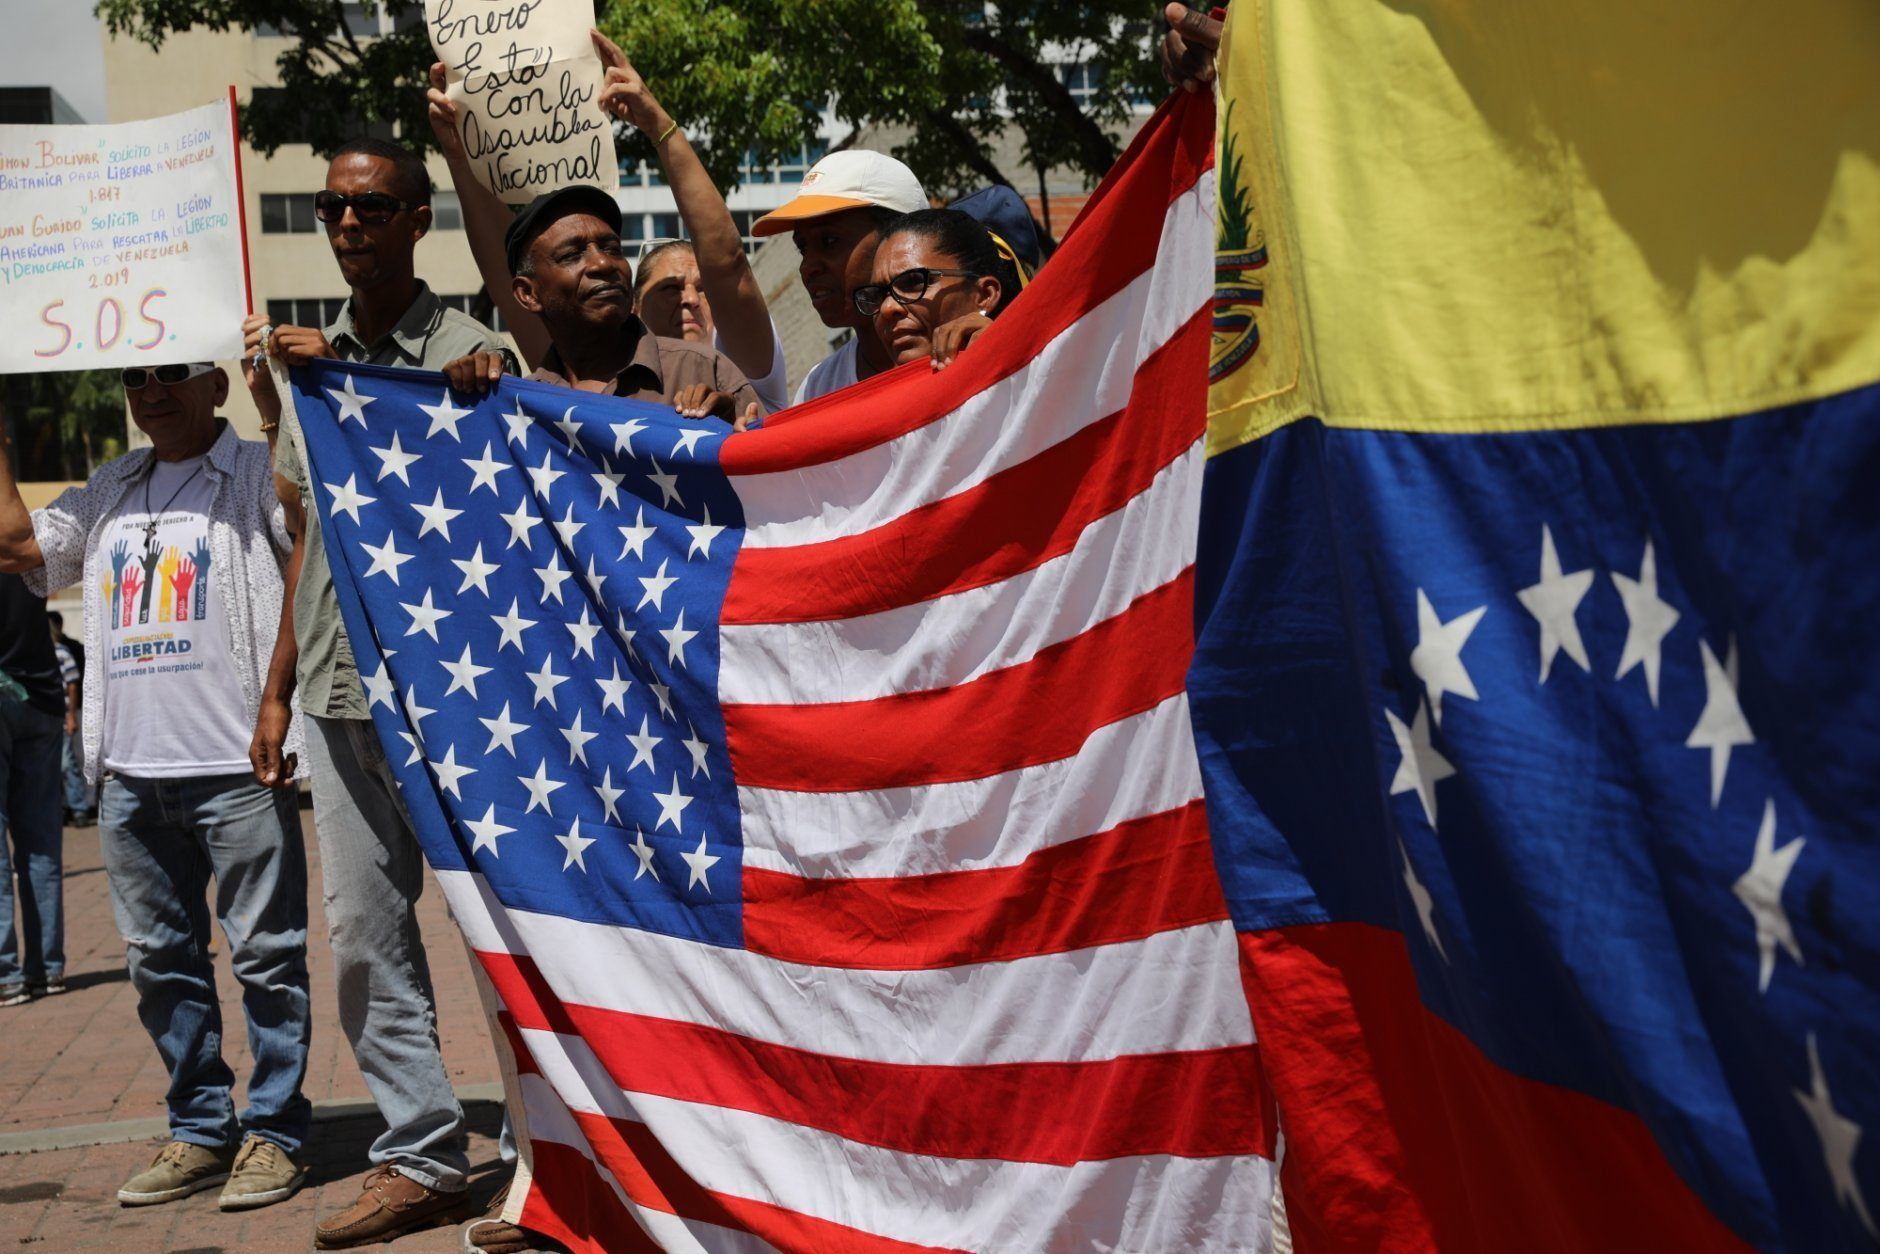 Opponents of the Nicolas Maduro government hold national flags representing the U.S, and Venezuela, as they wait for the arrival of opposition leader Juan Guaidó to lead a rally in Caracas, Venezuela, Saturday, May 11, 2019. Guaidó has called for nationwide marches protesting the Maduro government, demanding new elections and the release of jailed opposition lawmakers. (AP Photo/Rodrigo Abd)